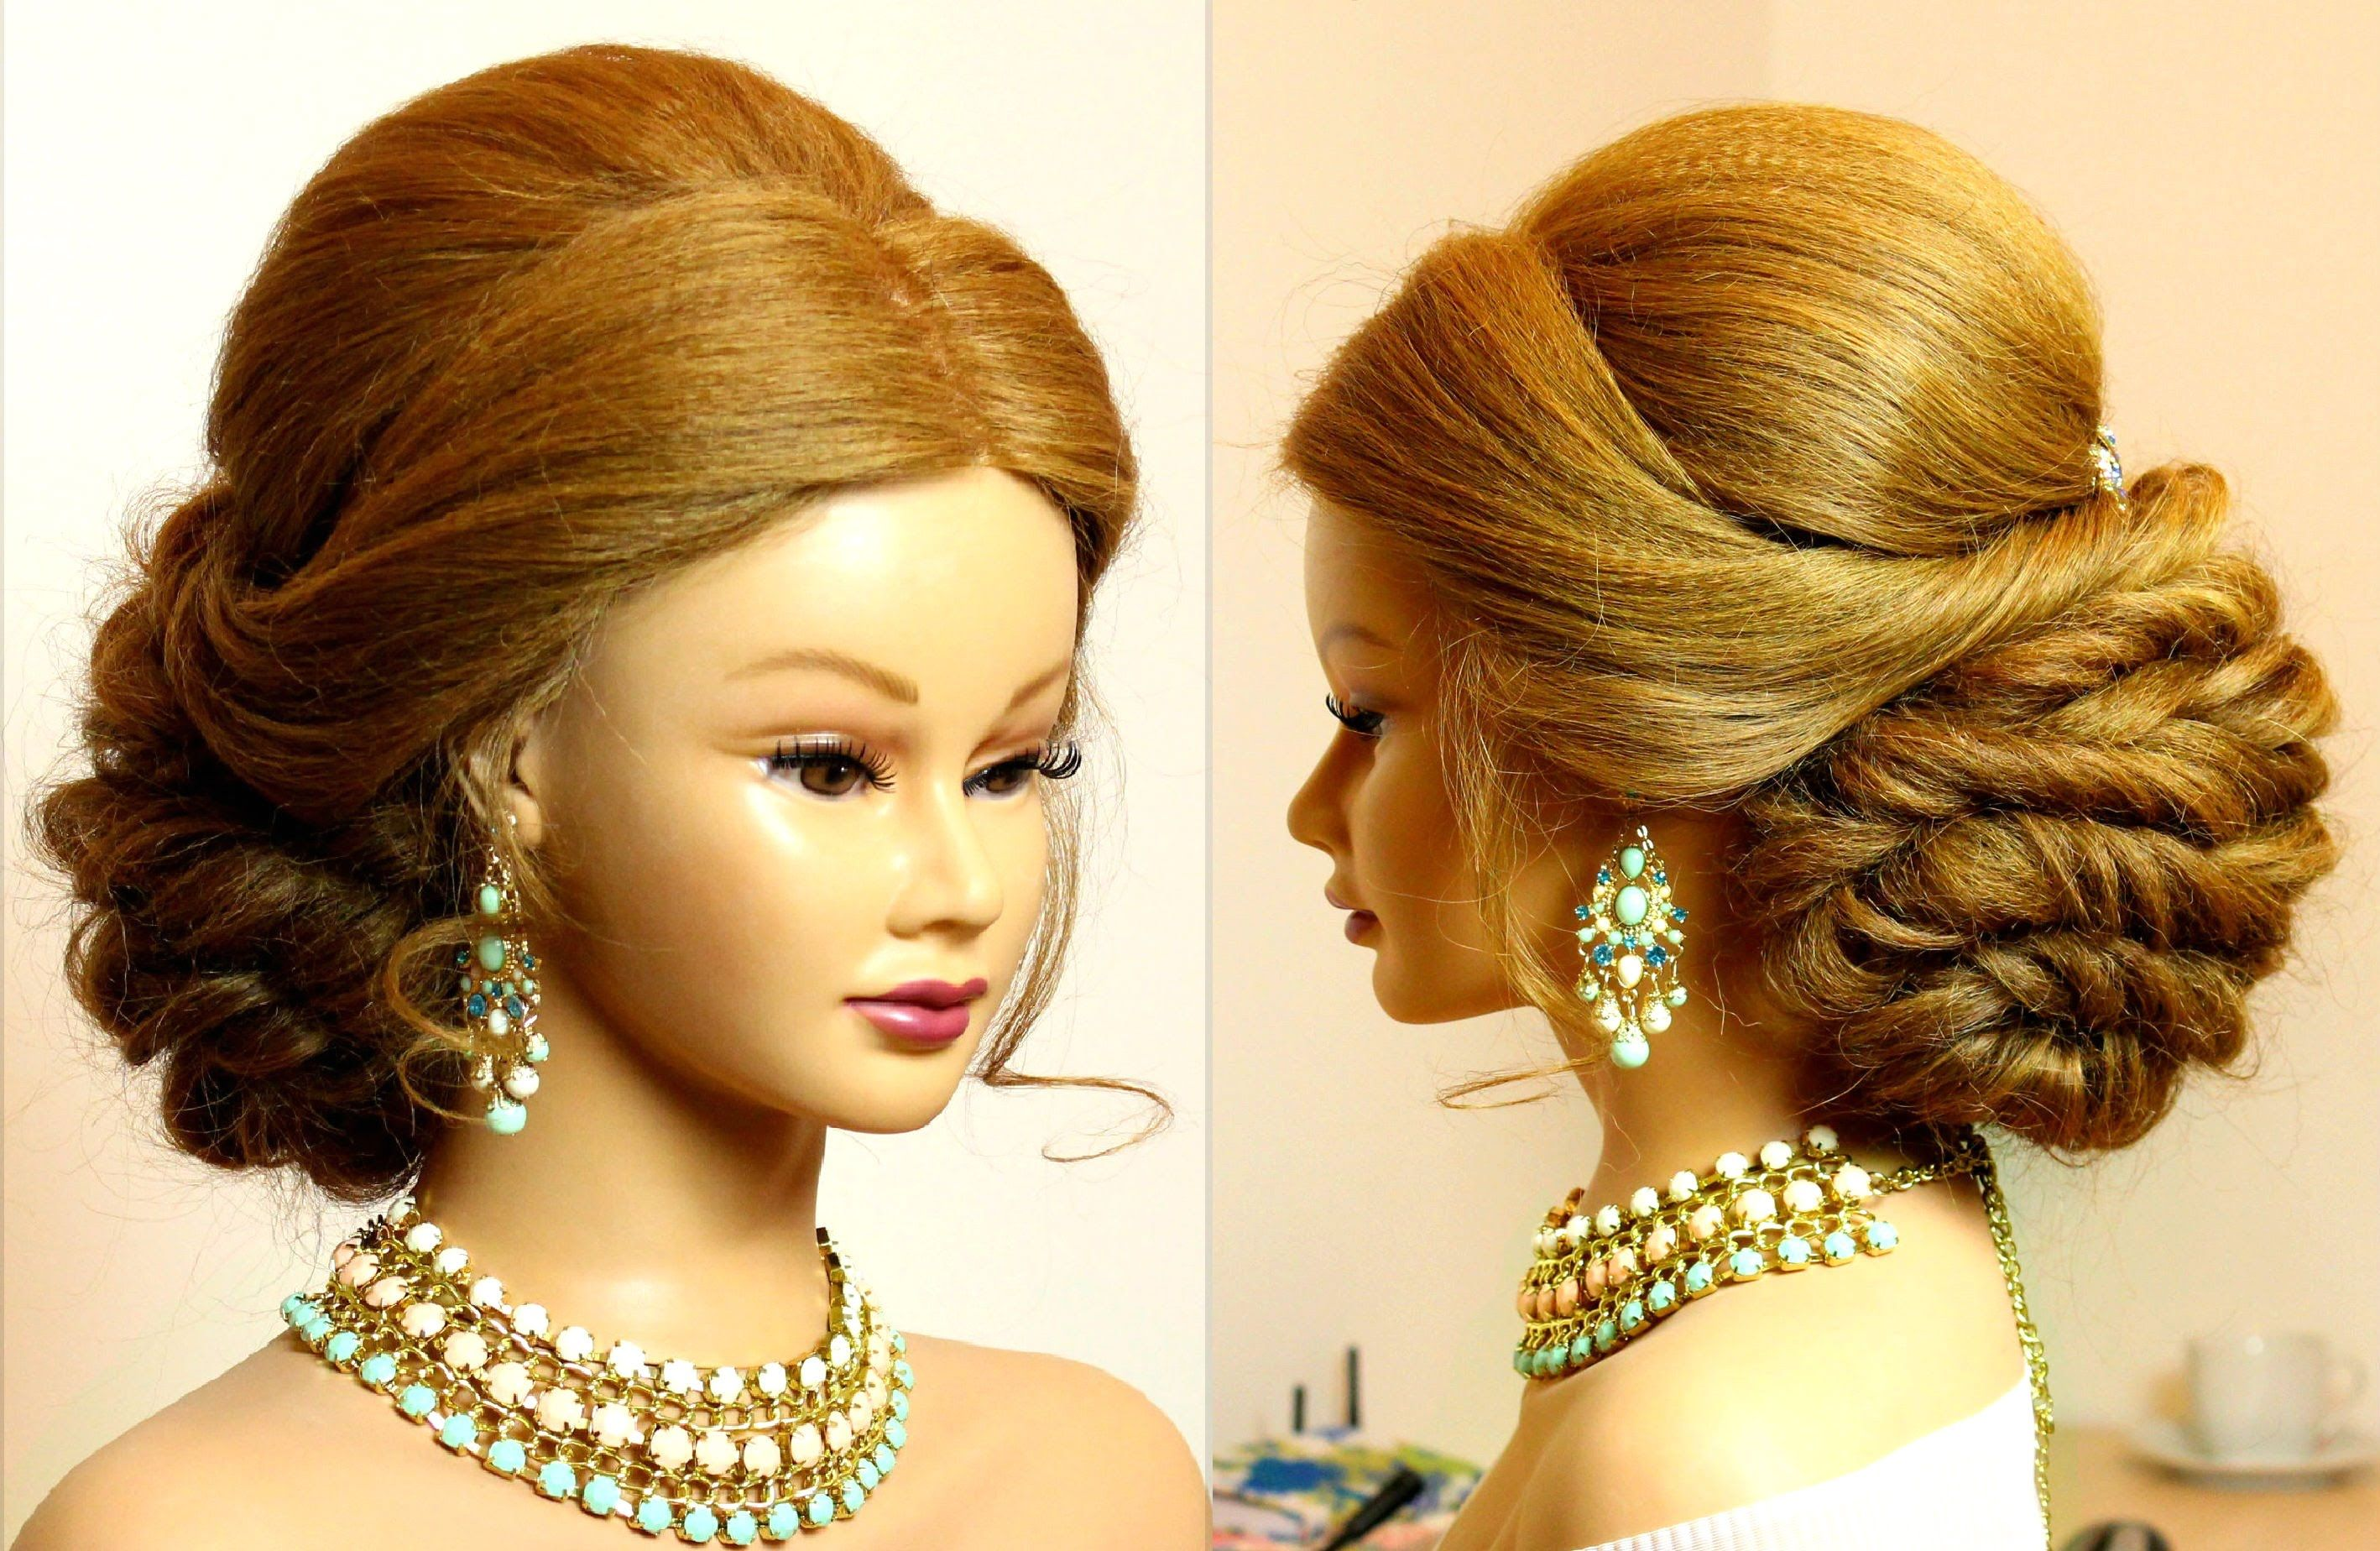 Wondrous Prom Hairstyles Hairstyle For Long Hair And Long Hair On Pinterest Hairstyles For Women Draintrainus